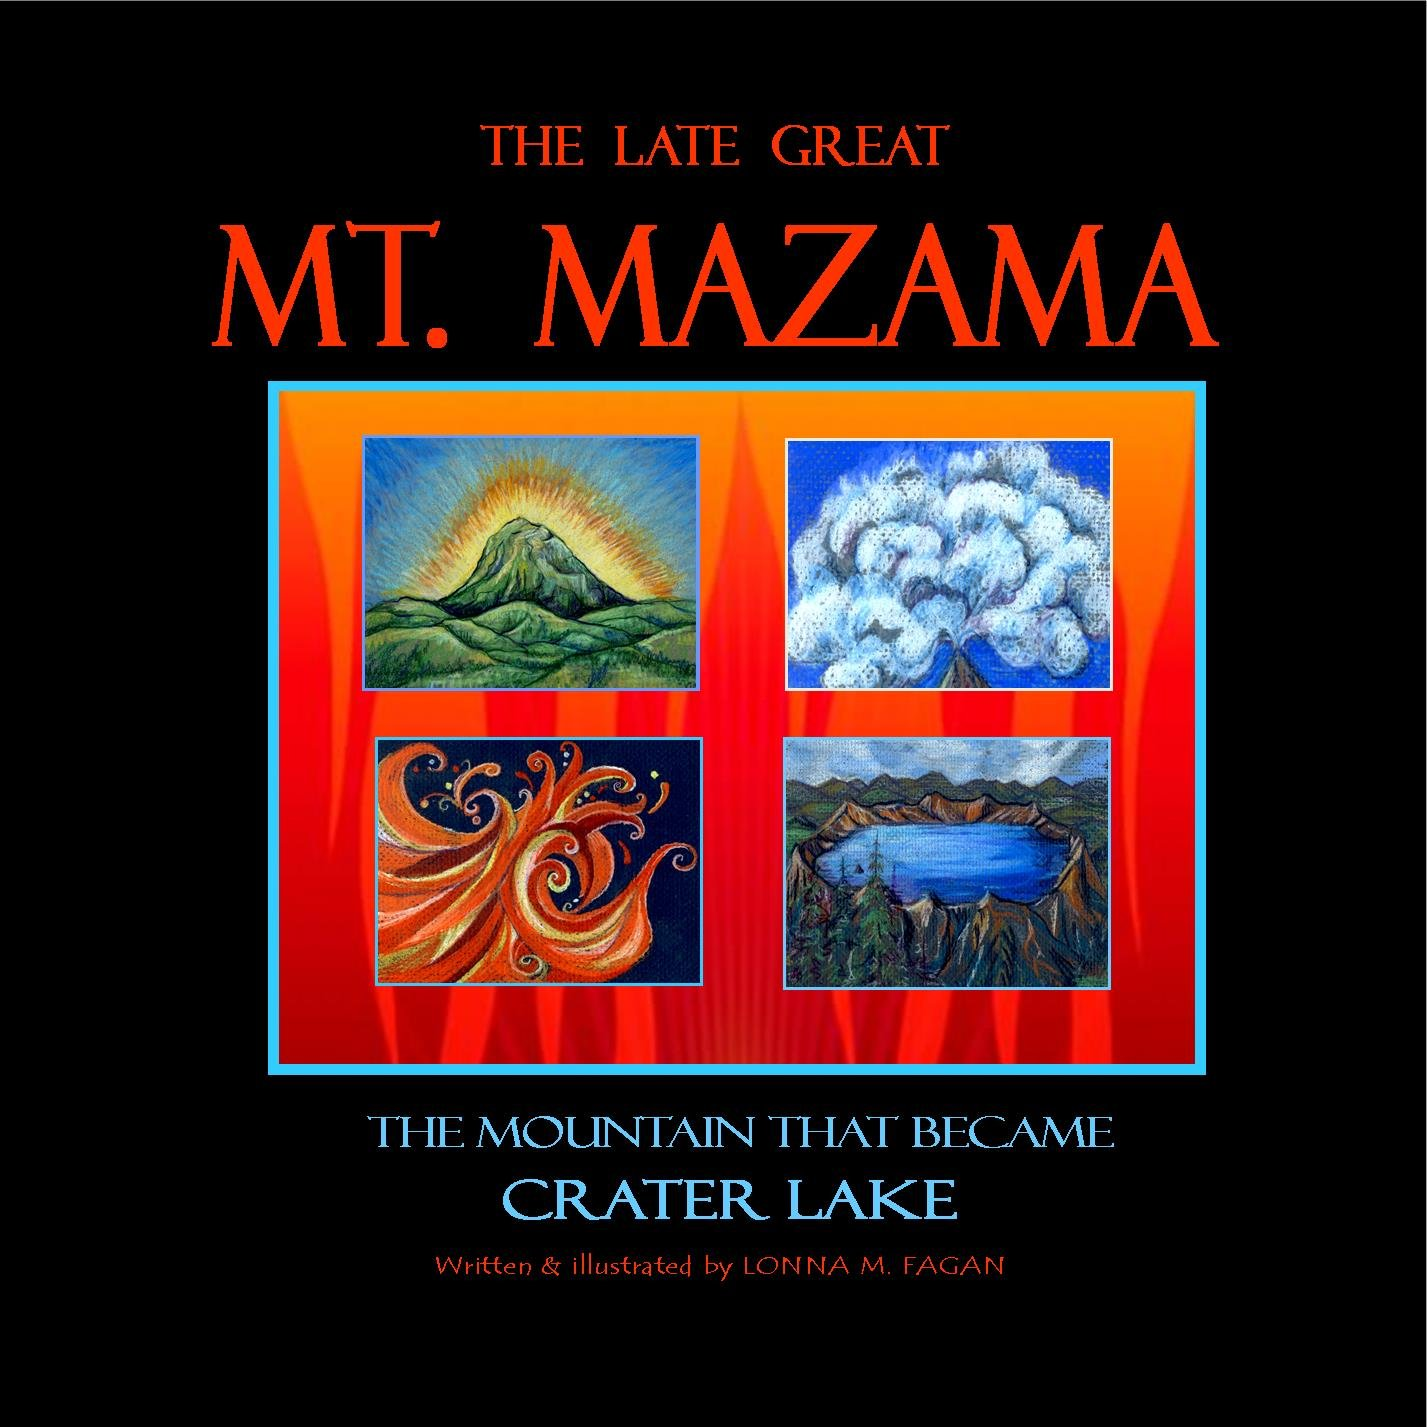 The Late Great Mt. Mazama...the story of Crater Lake, Lonna M Fagan